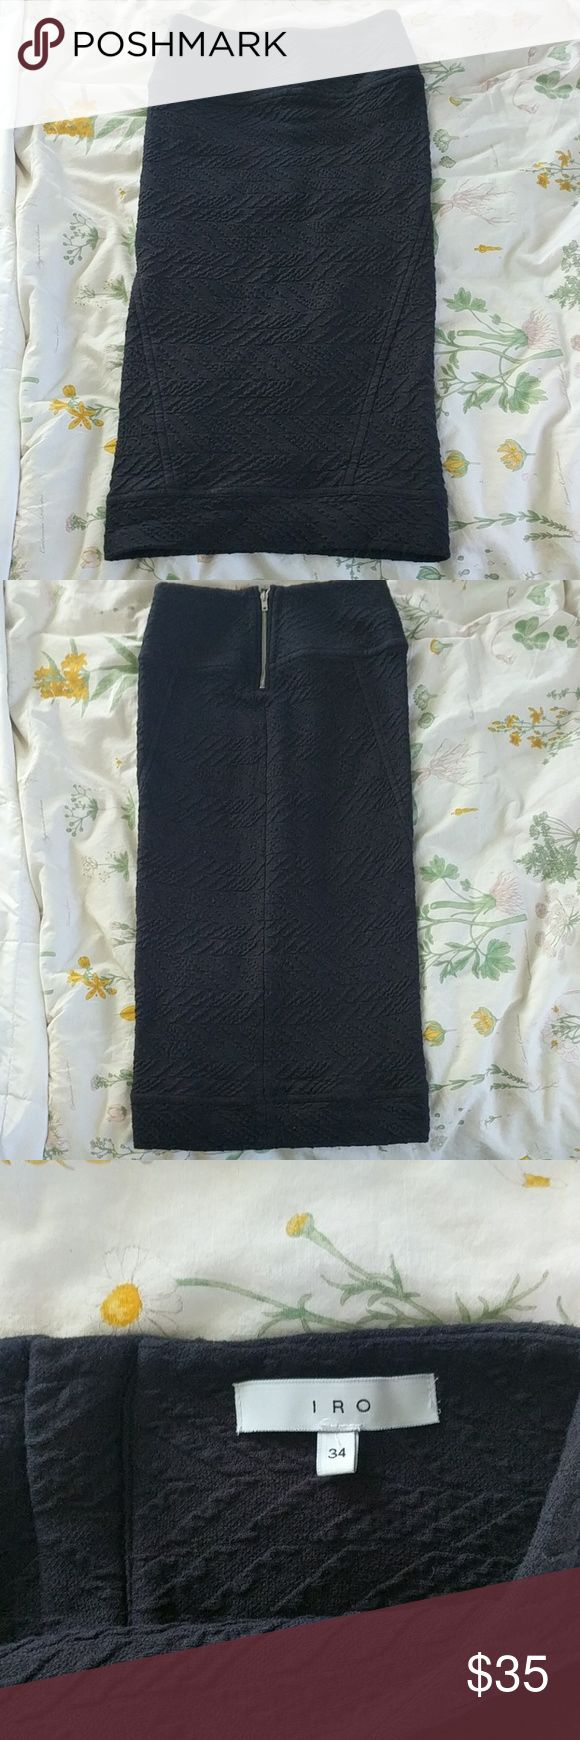 IRO pencil skirt Classy luxury brand IRO  Long black pencil skirt  Nice woven pattern  Euro size 34  US size 4 or Small Excellent condition IRO Skirts Pencil